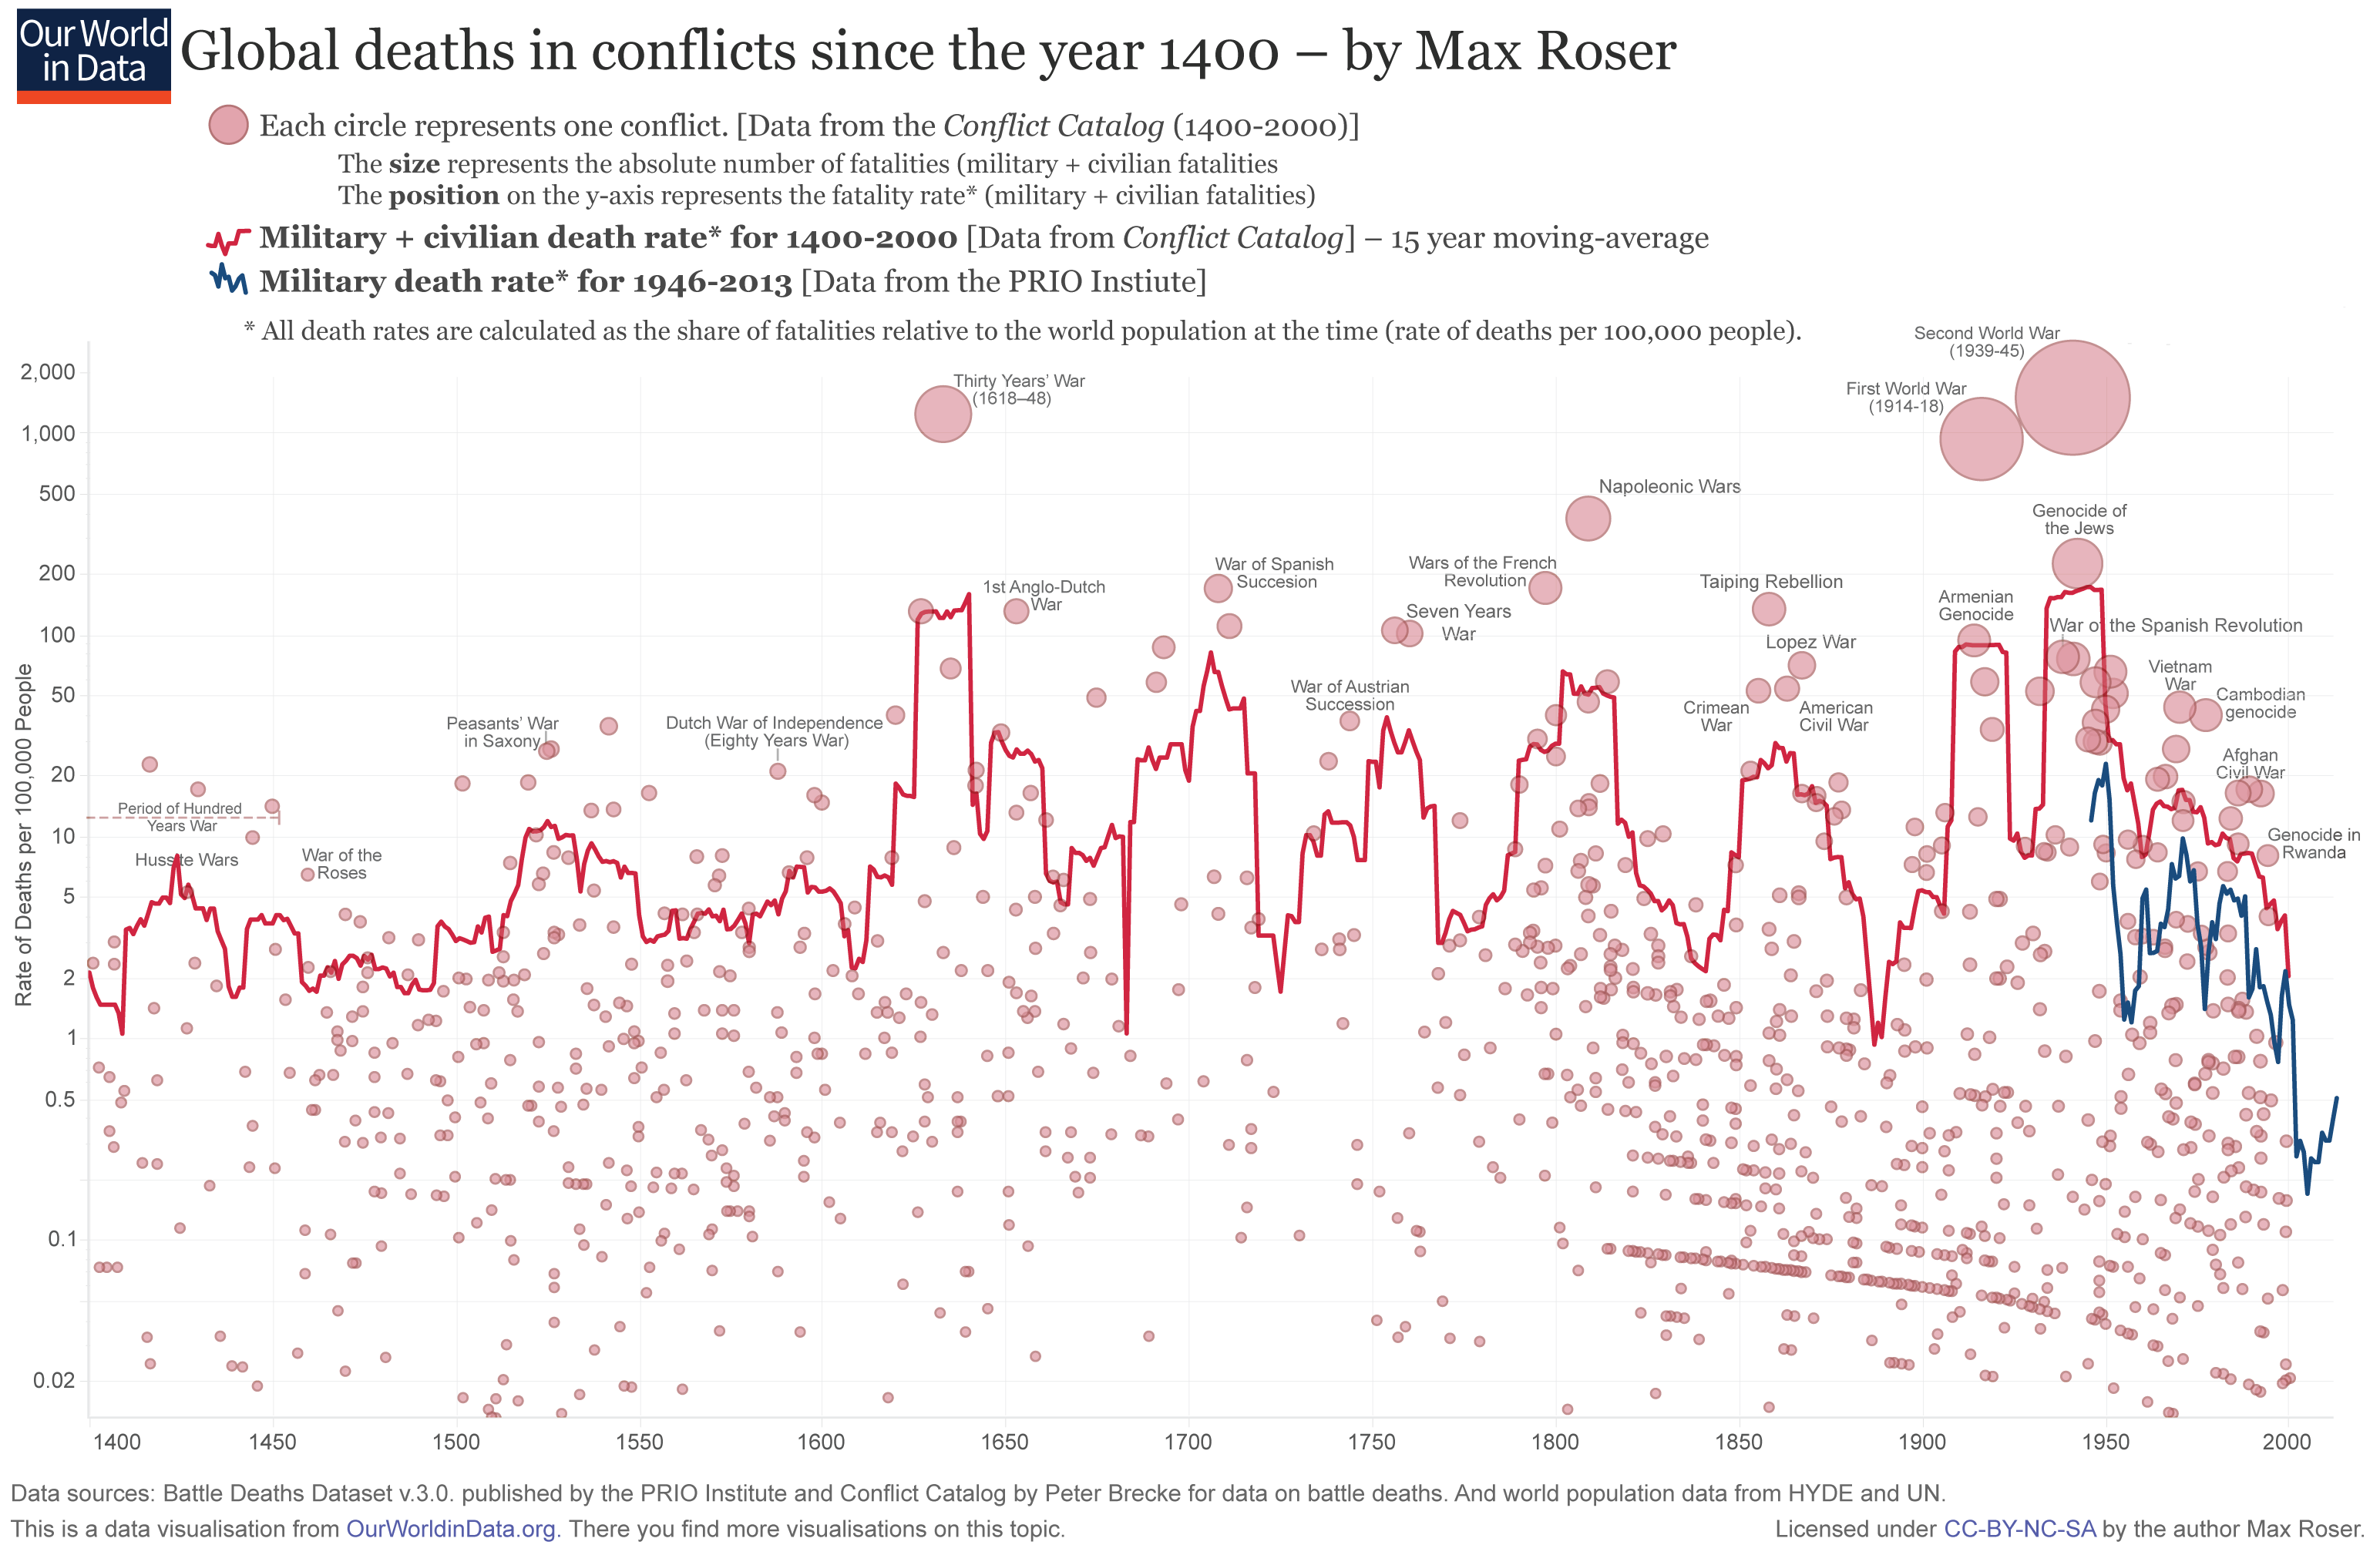 ourworldindata_wars-long-run-military-civilian-fatalities-from-brecke1.png